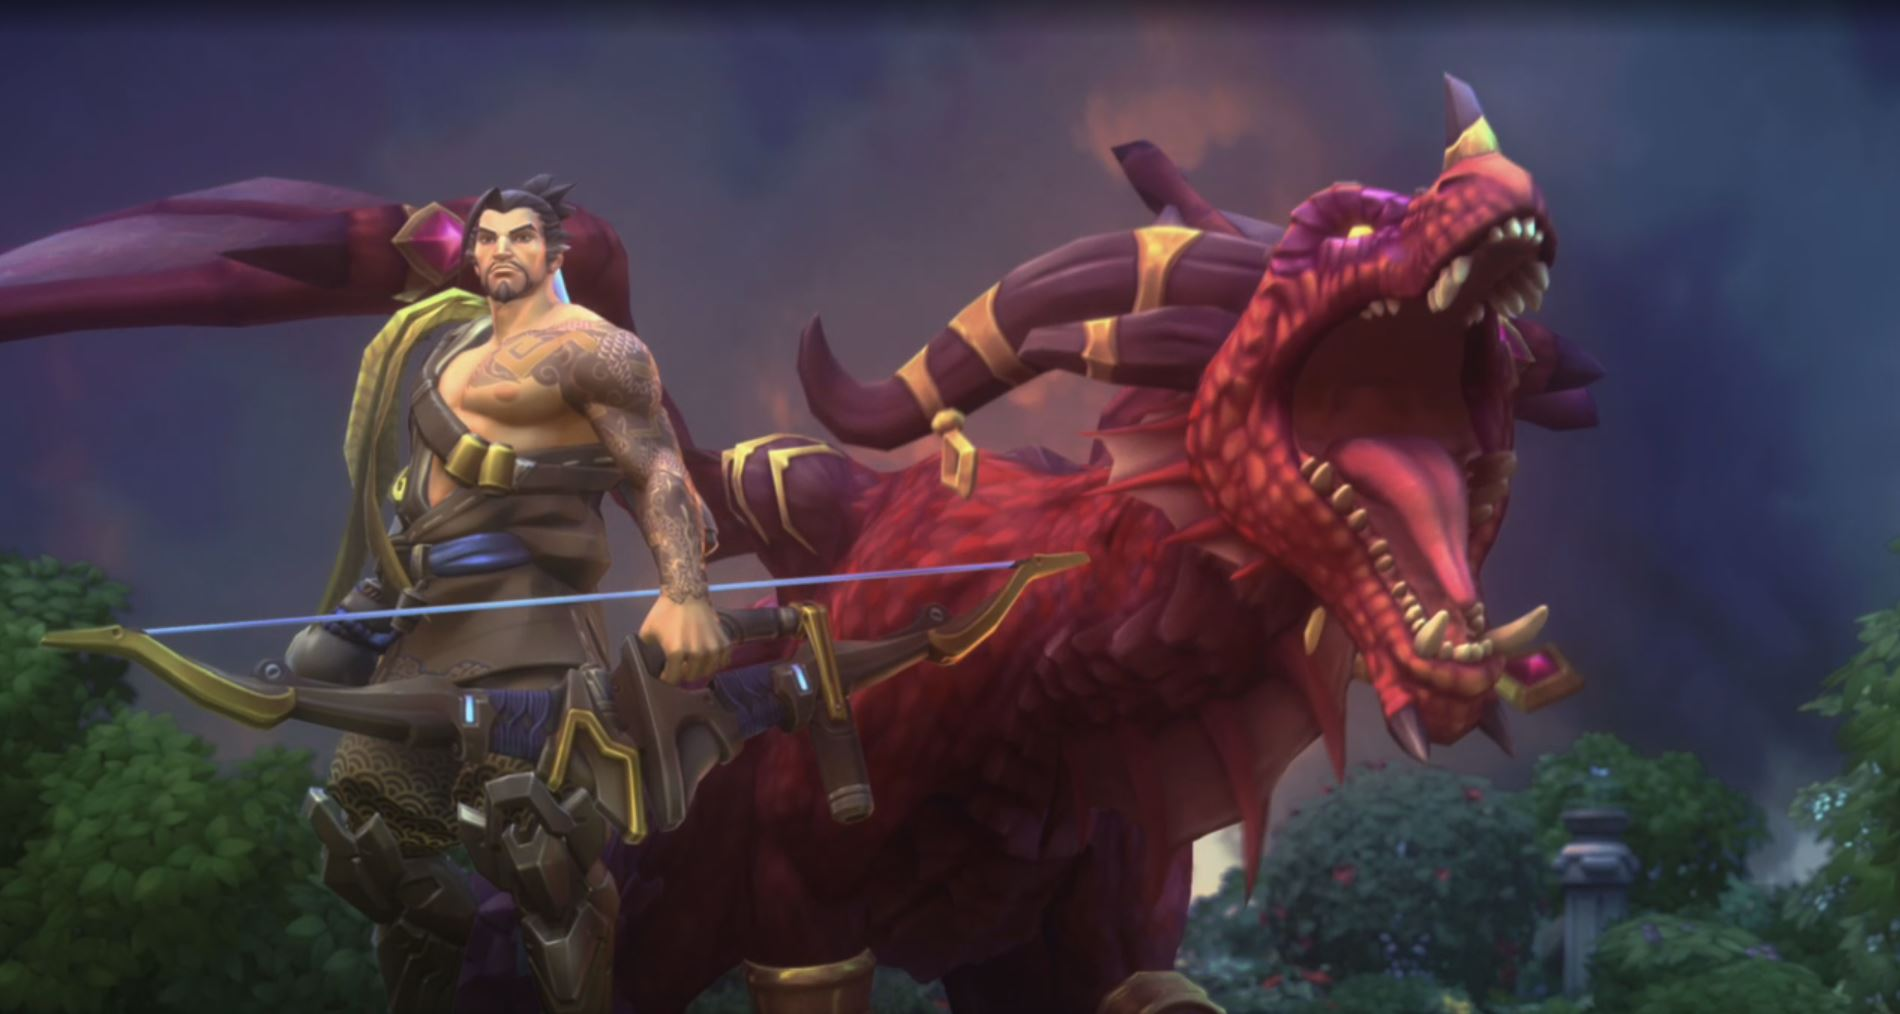 'Heroes of the Storm' Adds Hanzo from 'Overwatch'